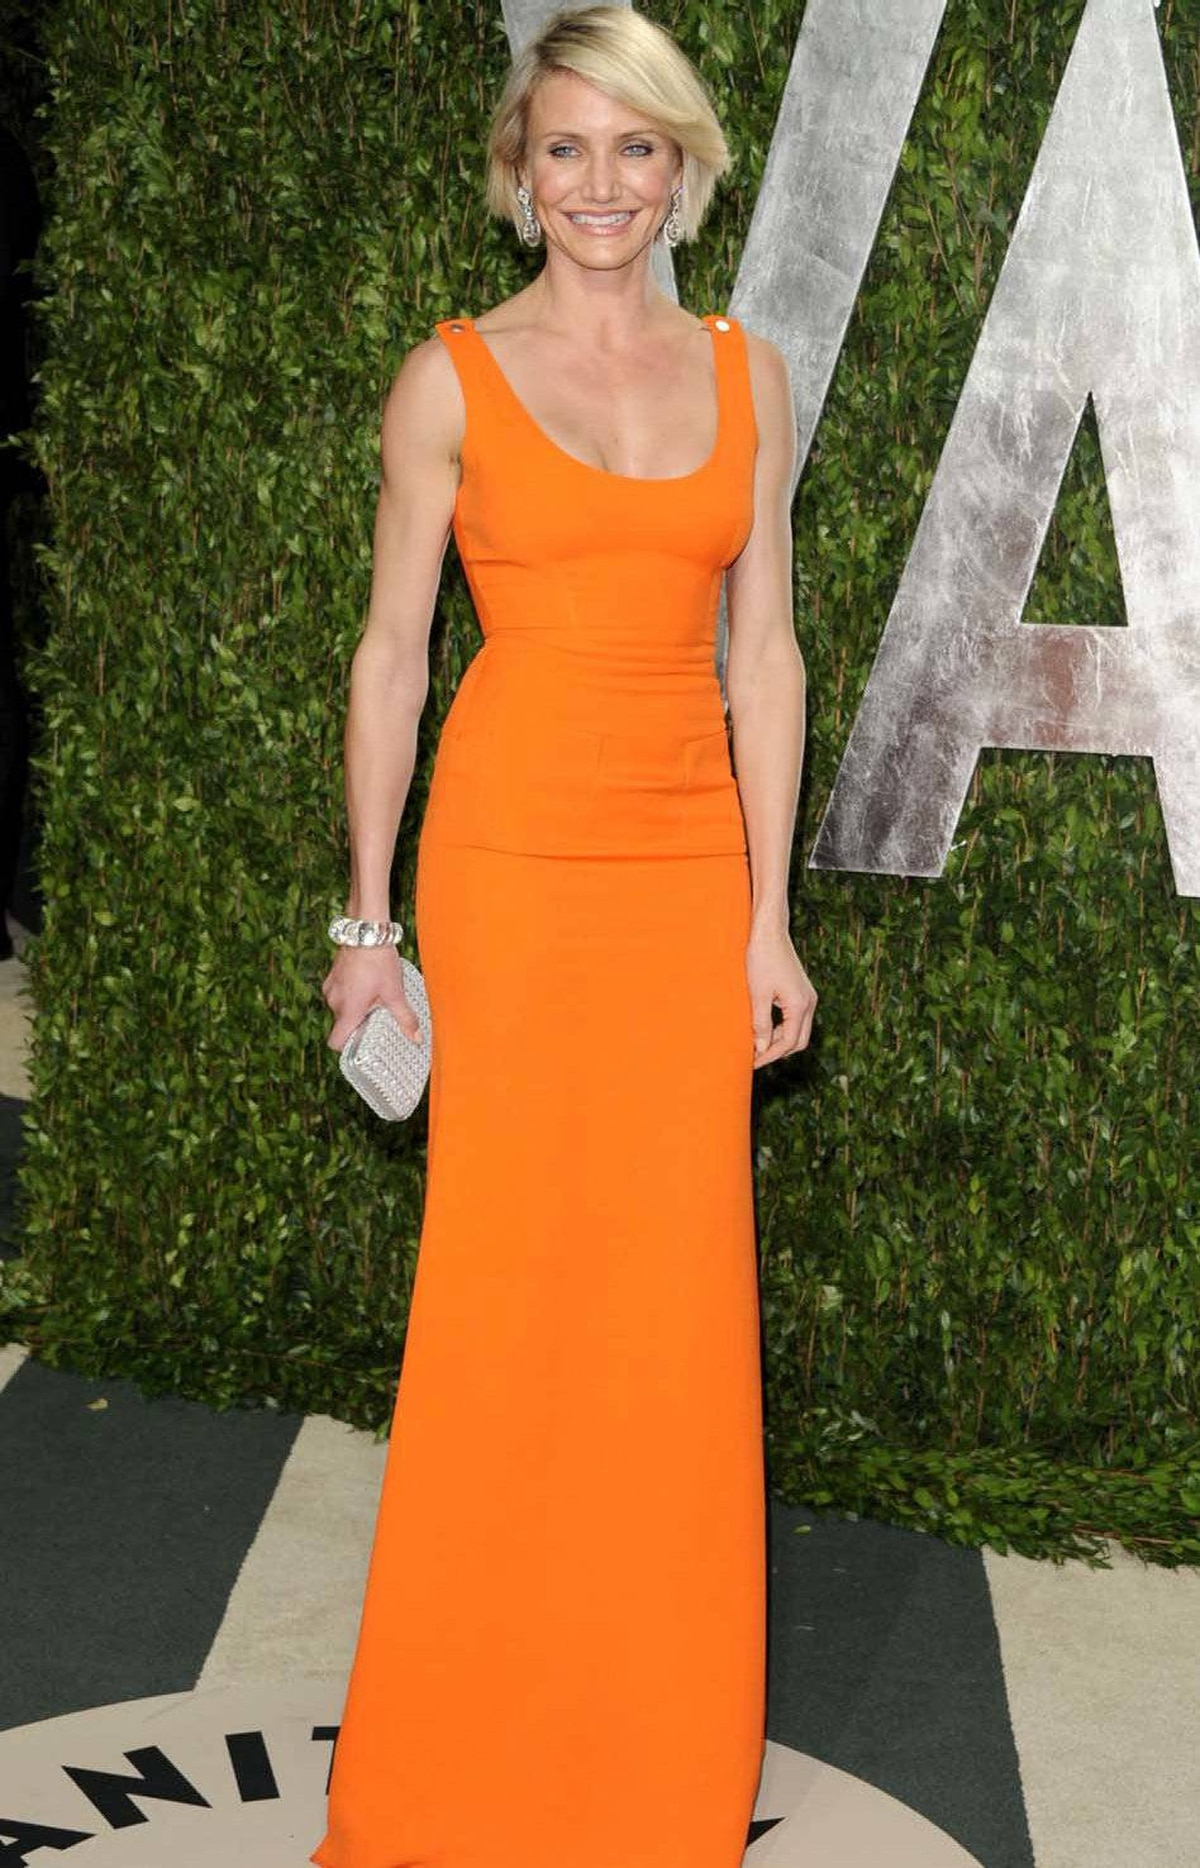 Cameron Diaz wore Home Depot to the Vanity Fair Oscar party on Sunday.